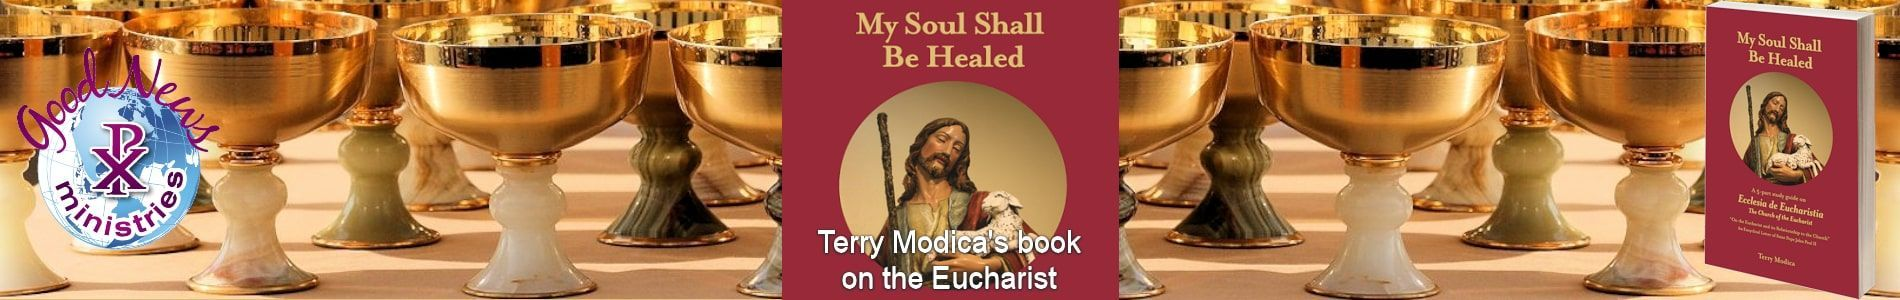 My Soul Shall Be Healed - book by Terry Modica